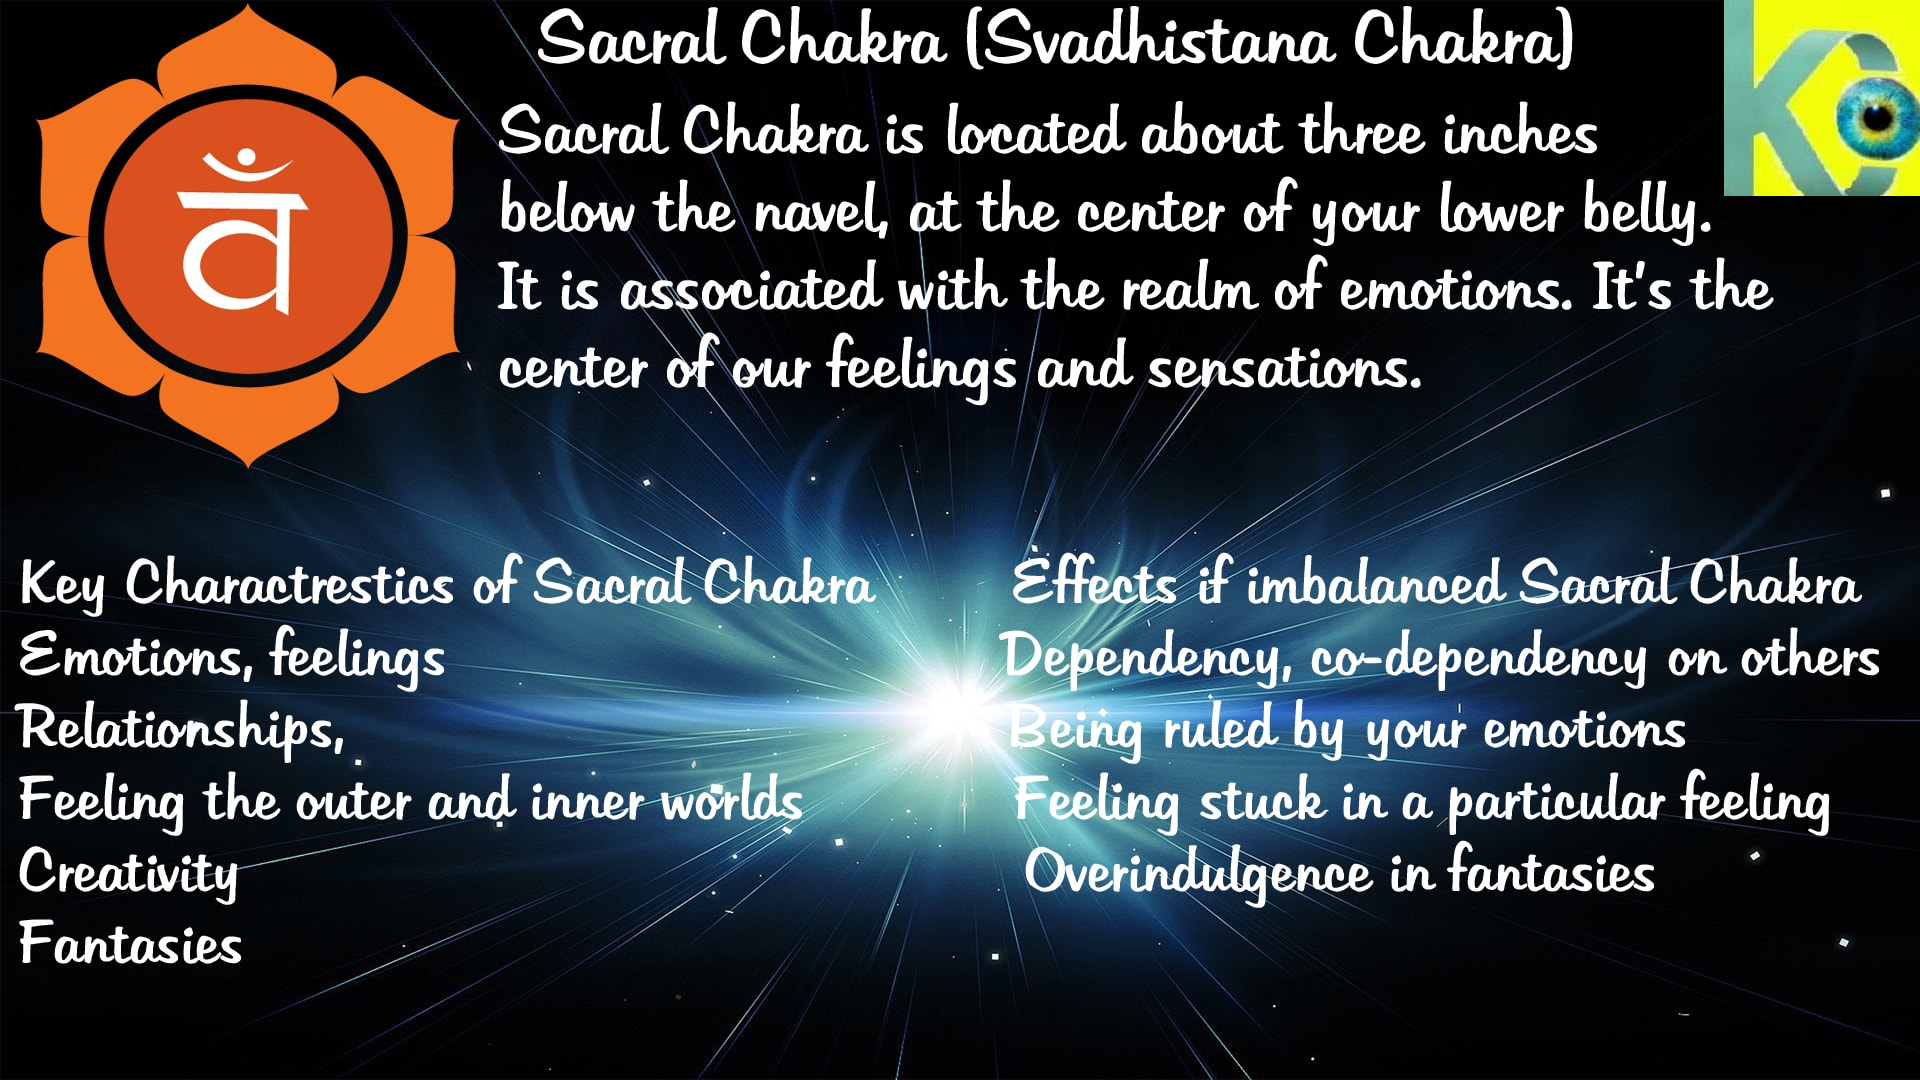 Scaral-Chakra-charactrestics-and-its-effects